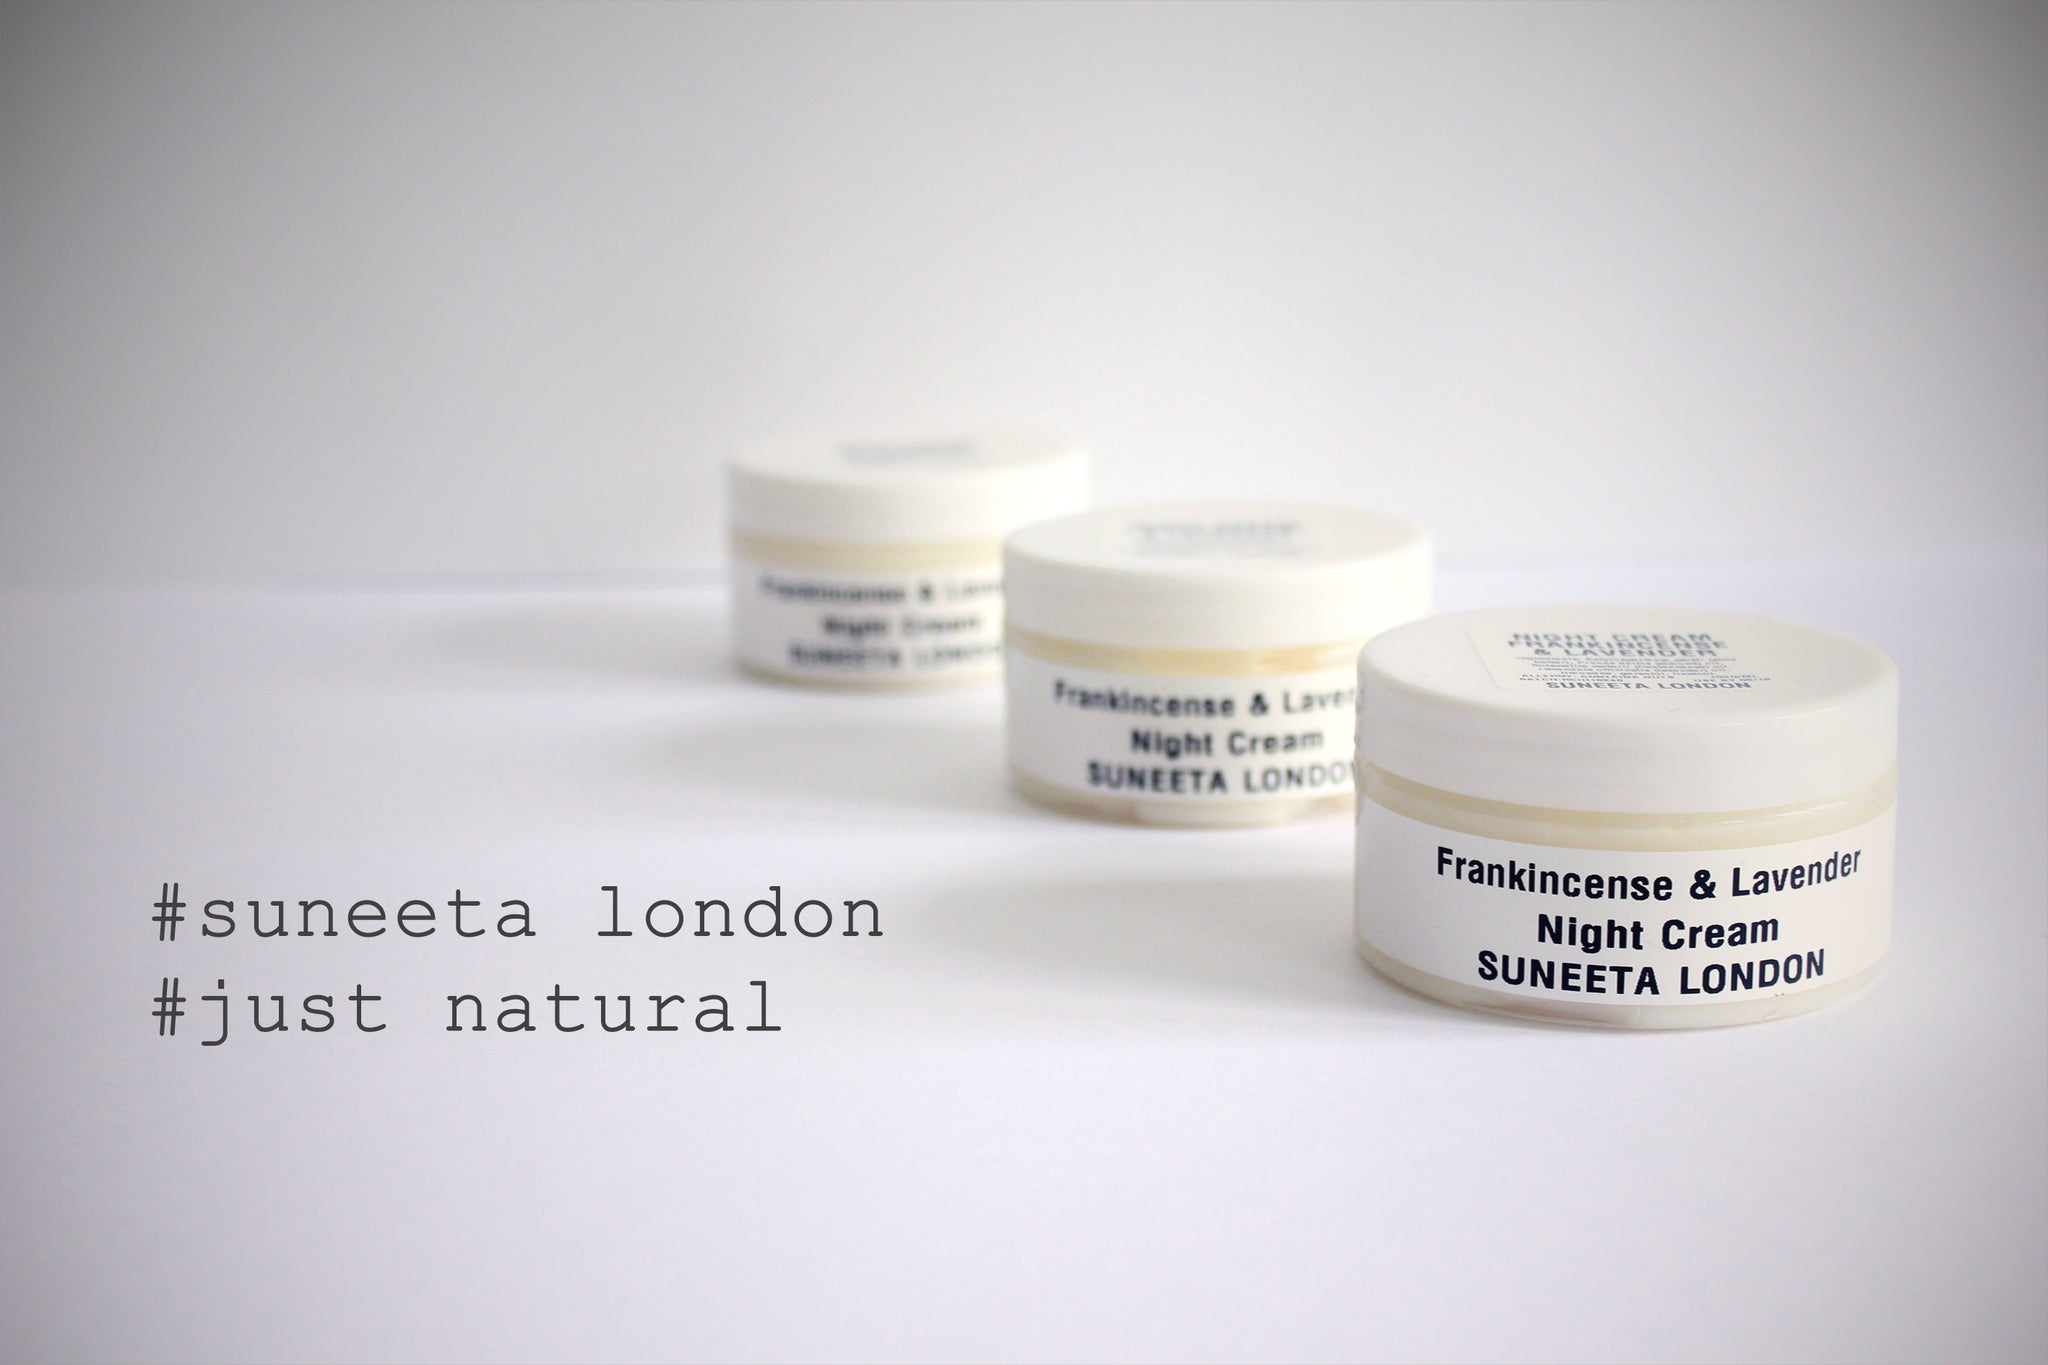 Just Natural, Suneeta Cosmetics, Night Cream, Frankincense, Lavender, Shea Butter, Almond Oil